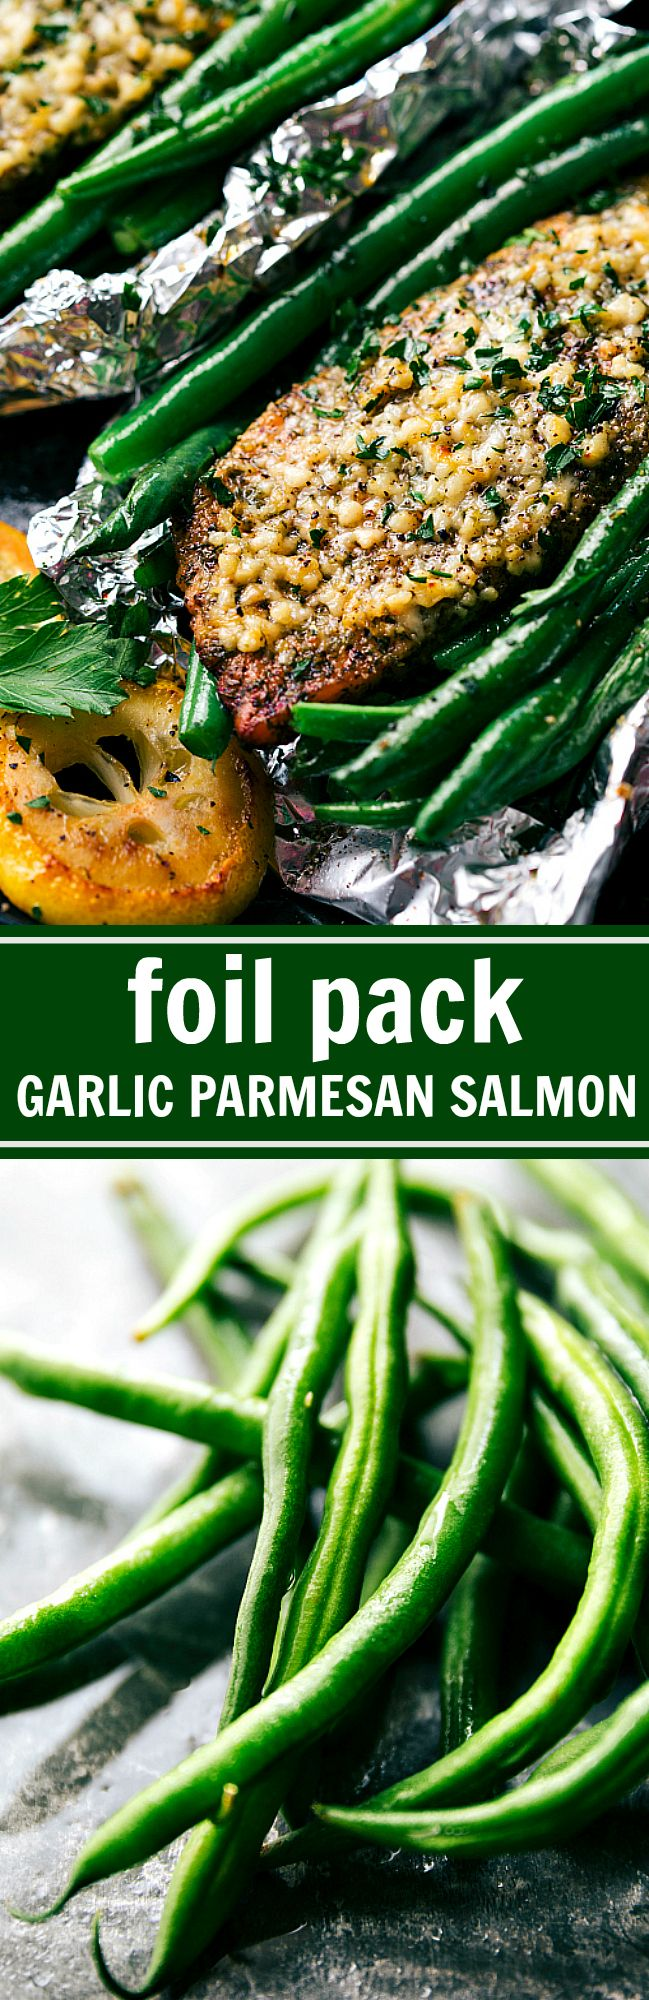 30 MINUTE DINNER! So fast and easy to make! Lemon garlic parmesan salmon and green beans in foil packets cooked over the grill or in the oven. Recipe from chelseasmessyapron.com